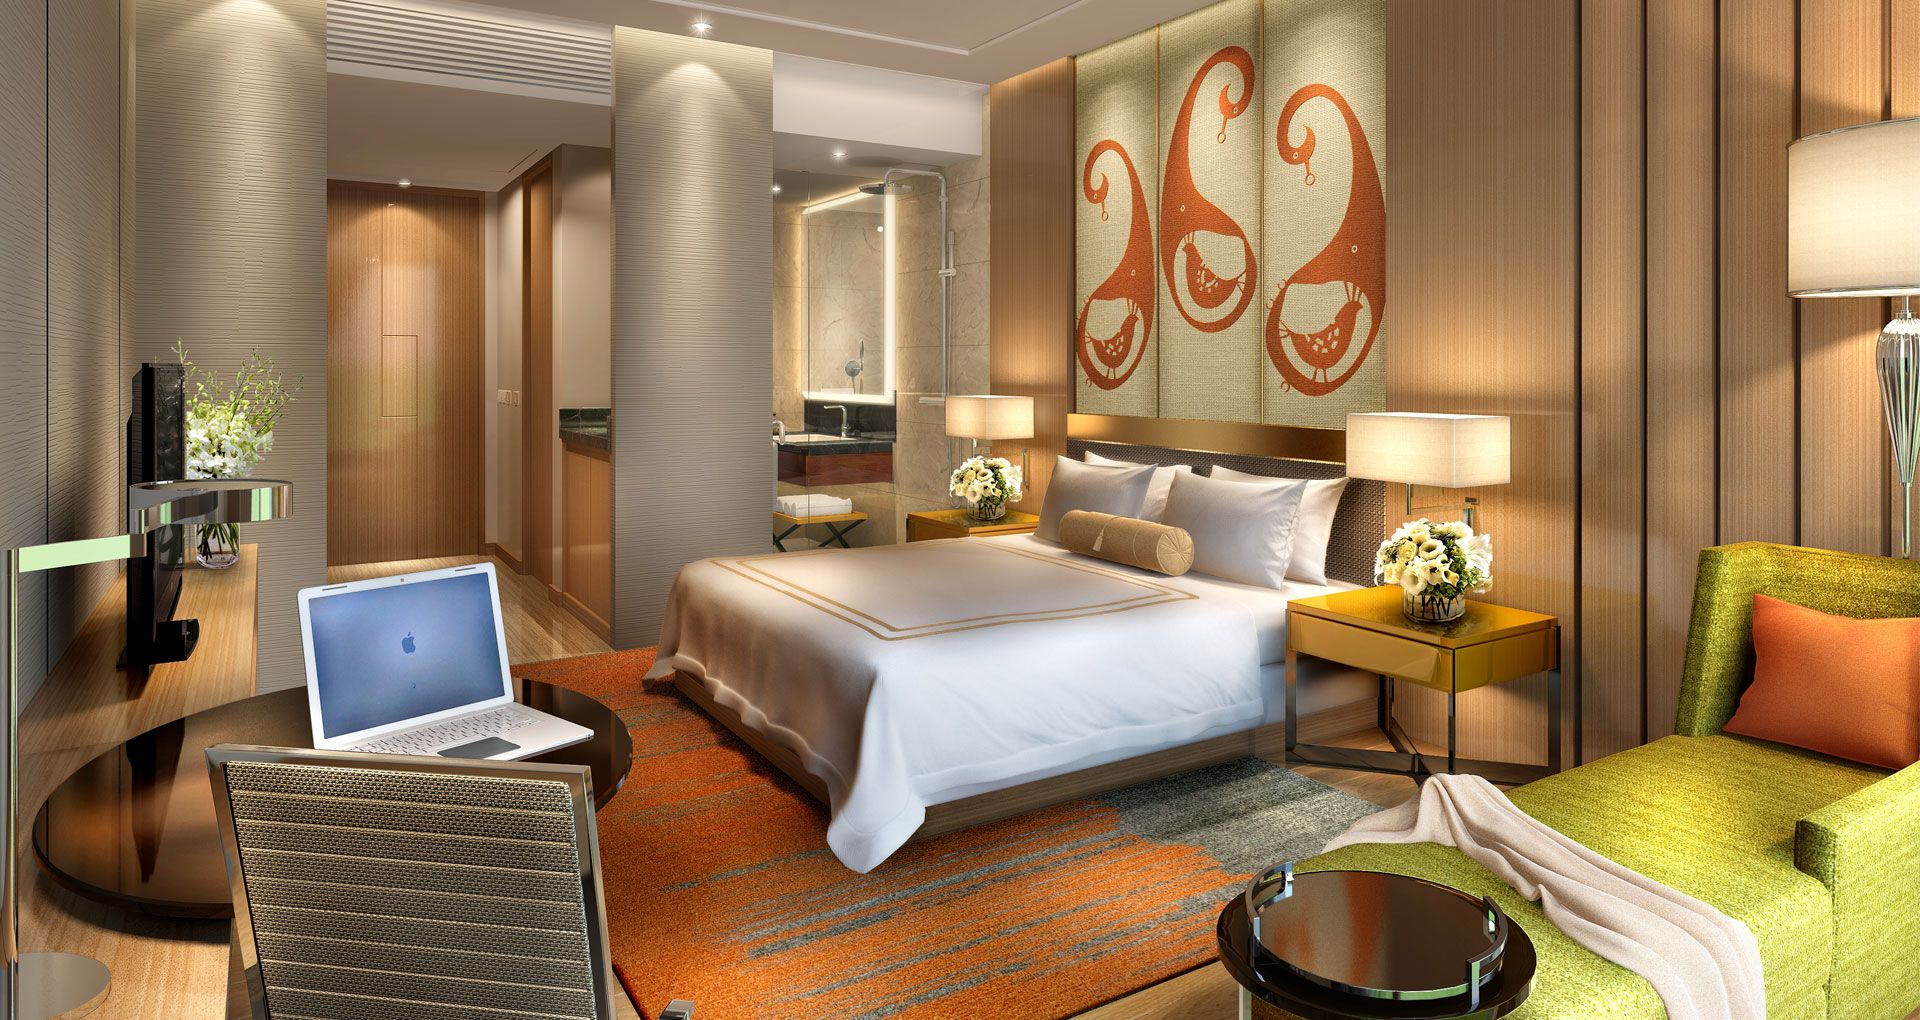 Hotel Courtyard Marriott Bangalore India Designed By Studio Hba A 200 Room Urban Business